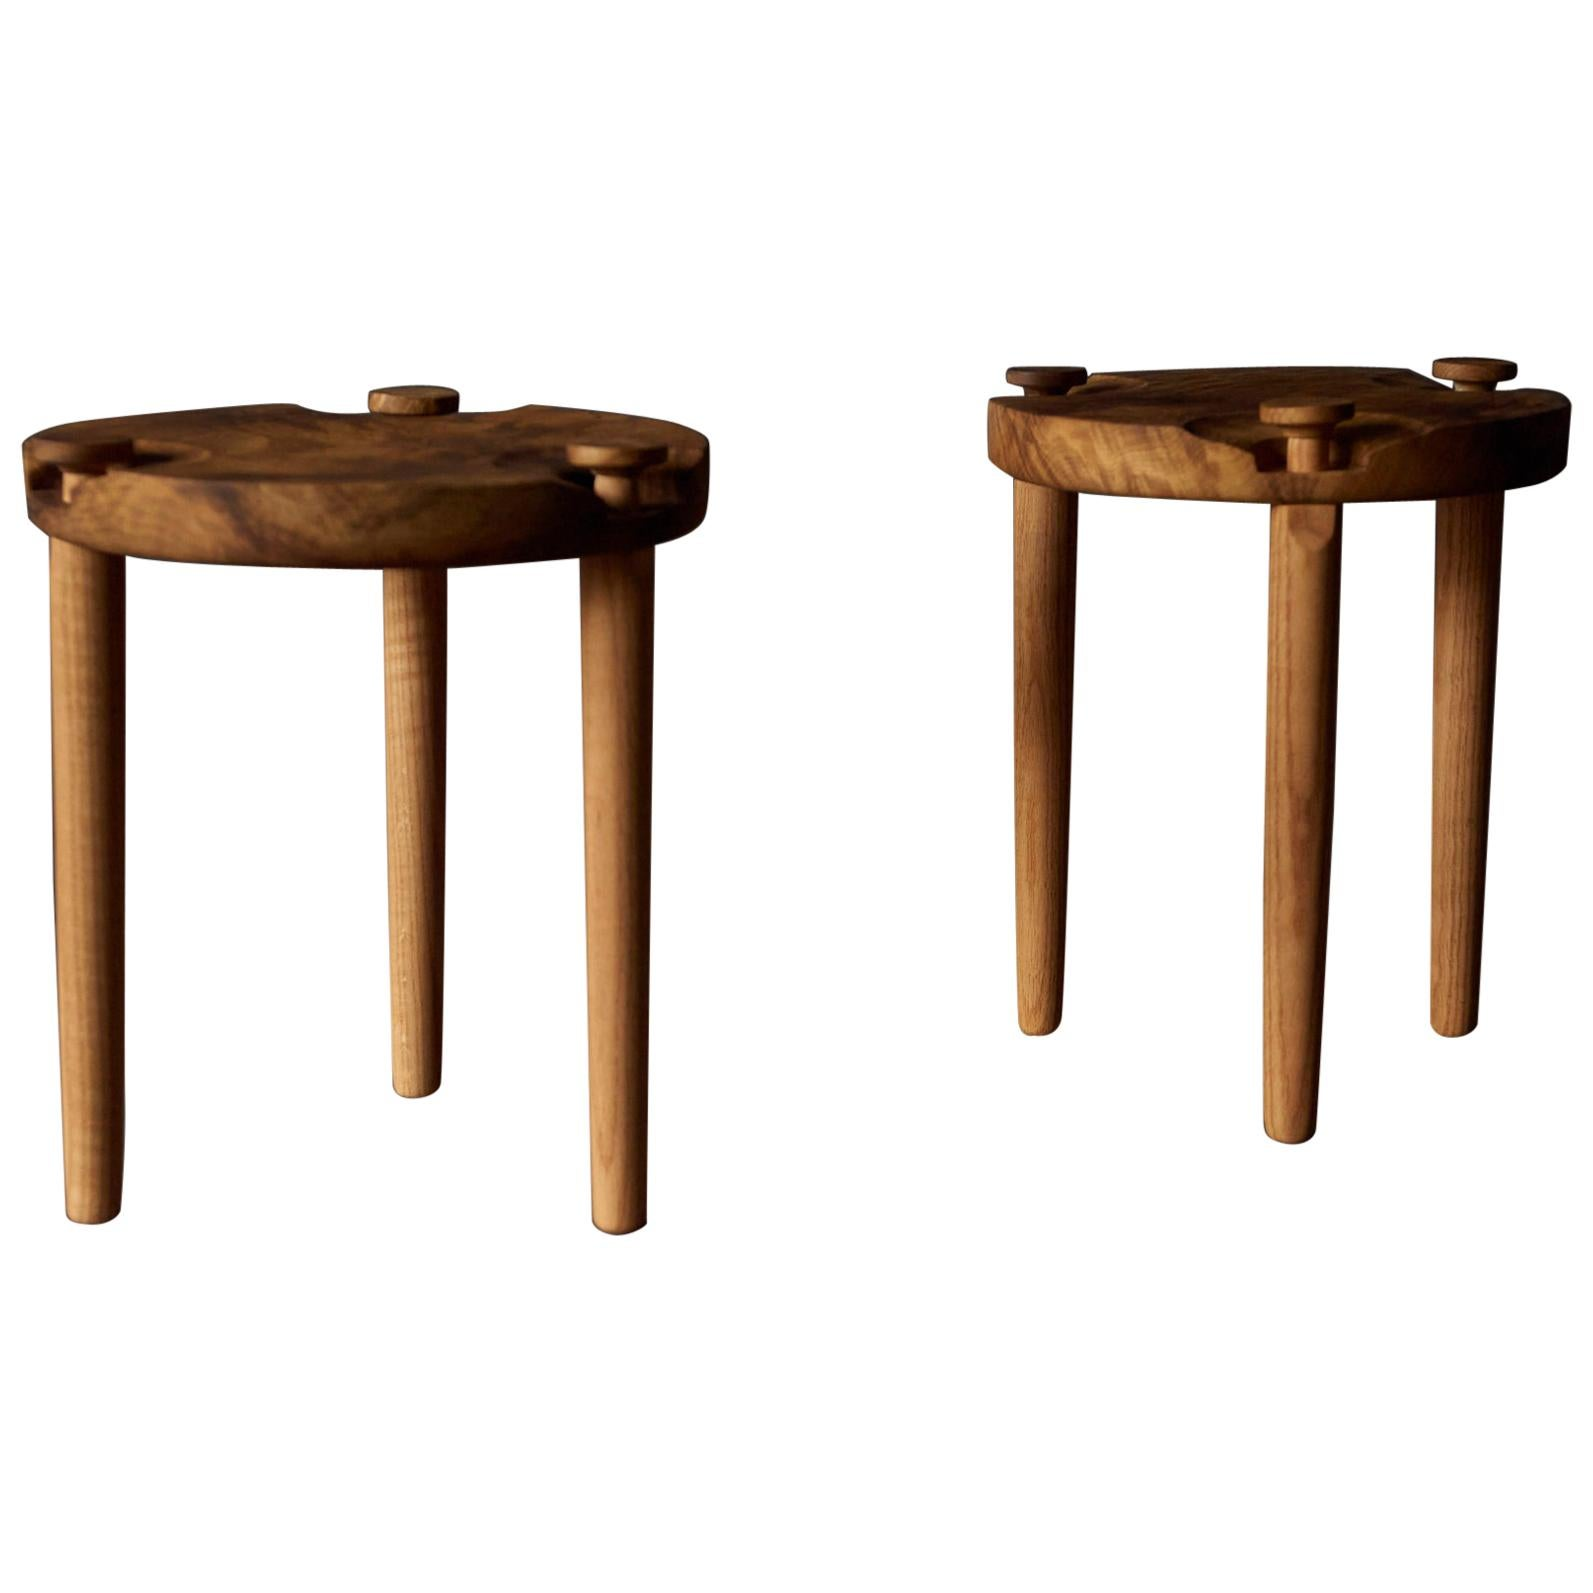 Pair of Side Tables in White Oak Burl Top by Michael Rozell, USA, 2020